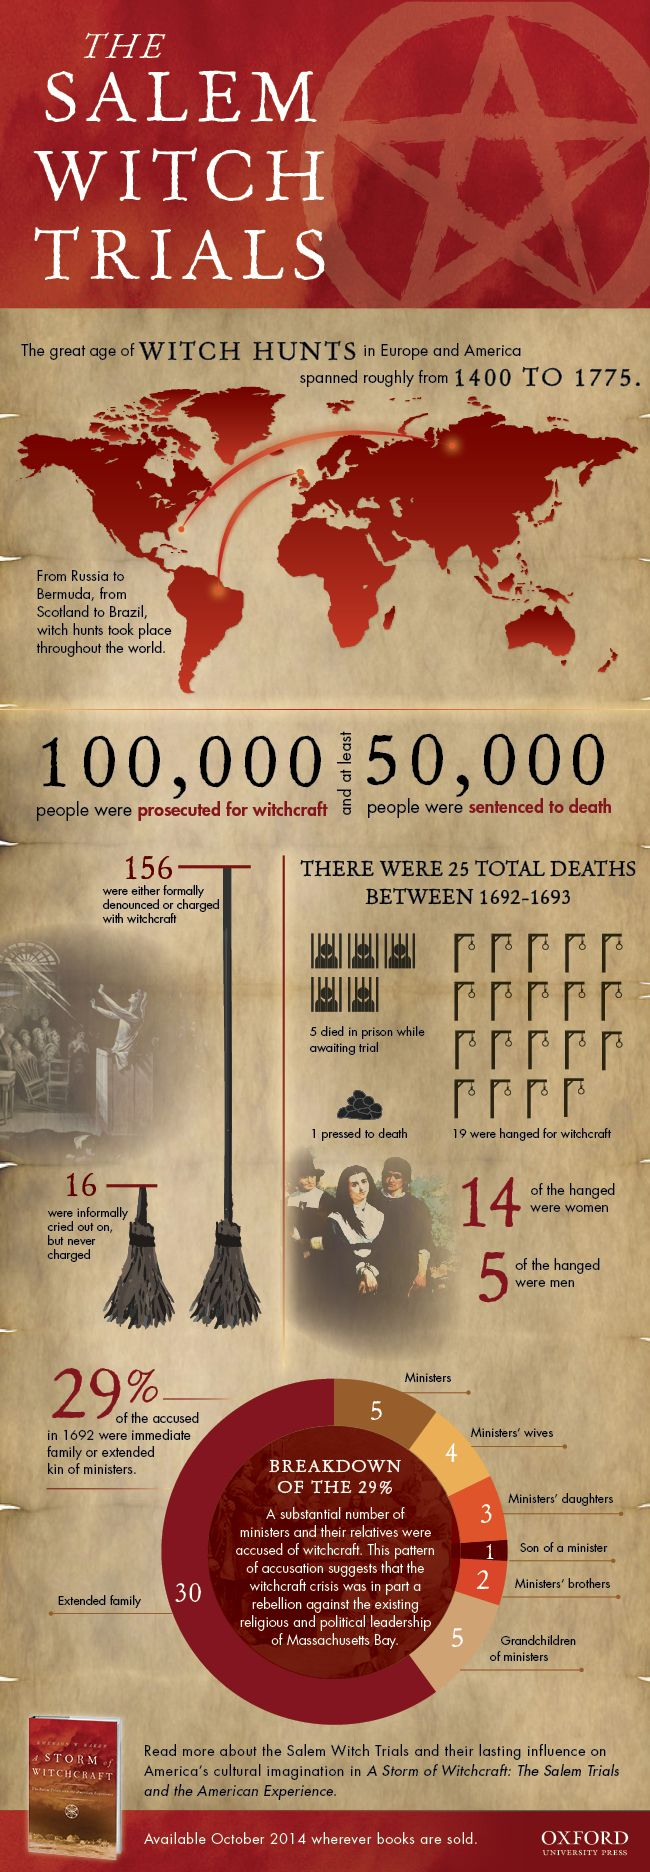 The Salem Witch Trials [infographic